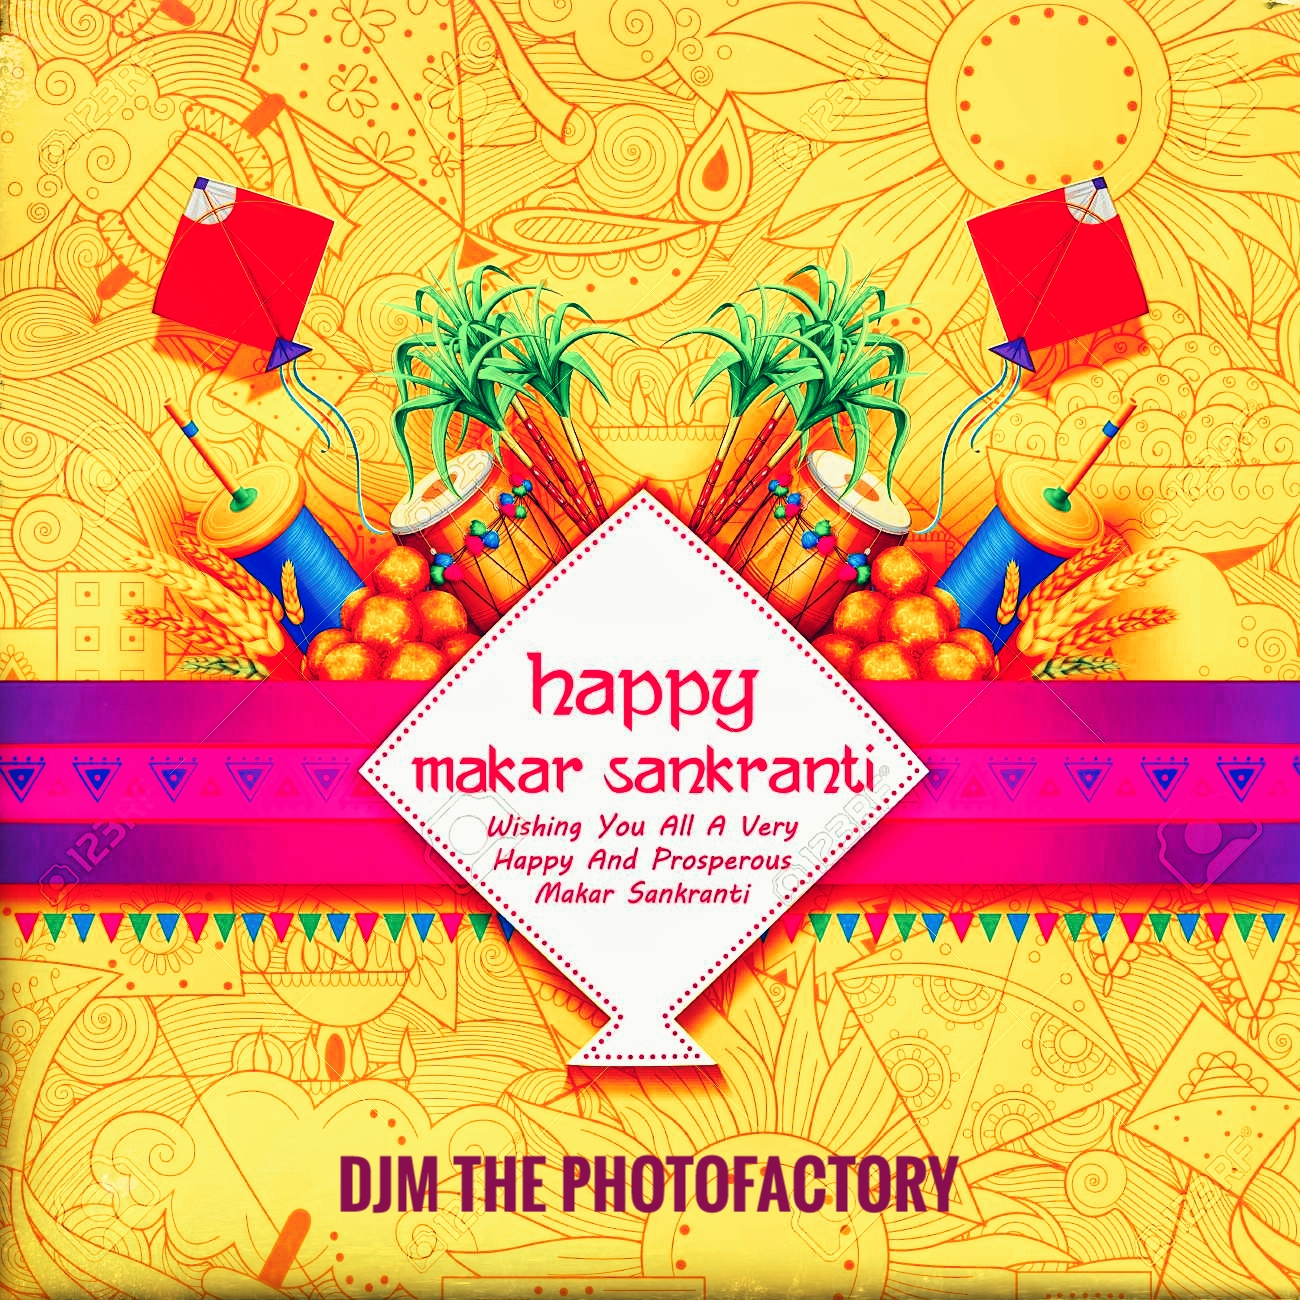 Happy Makar Sankranti 2020: Wishes images, messages, quotes, SMS, Facebook and WhatsApp status happy pongal day, happy lohri